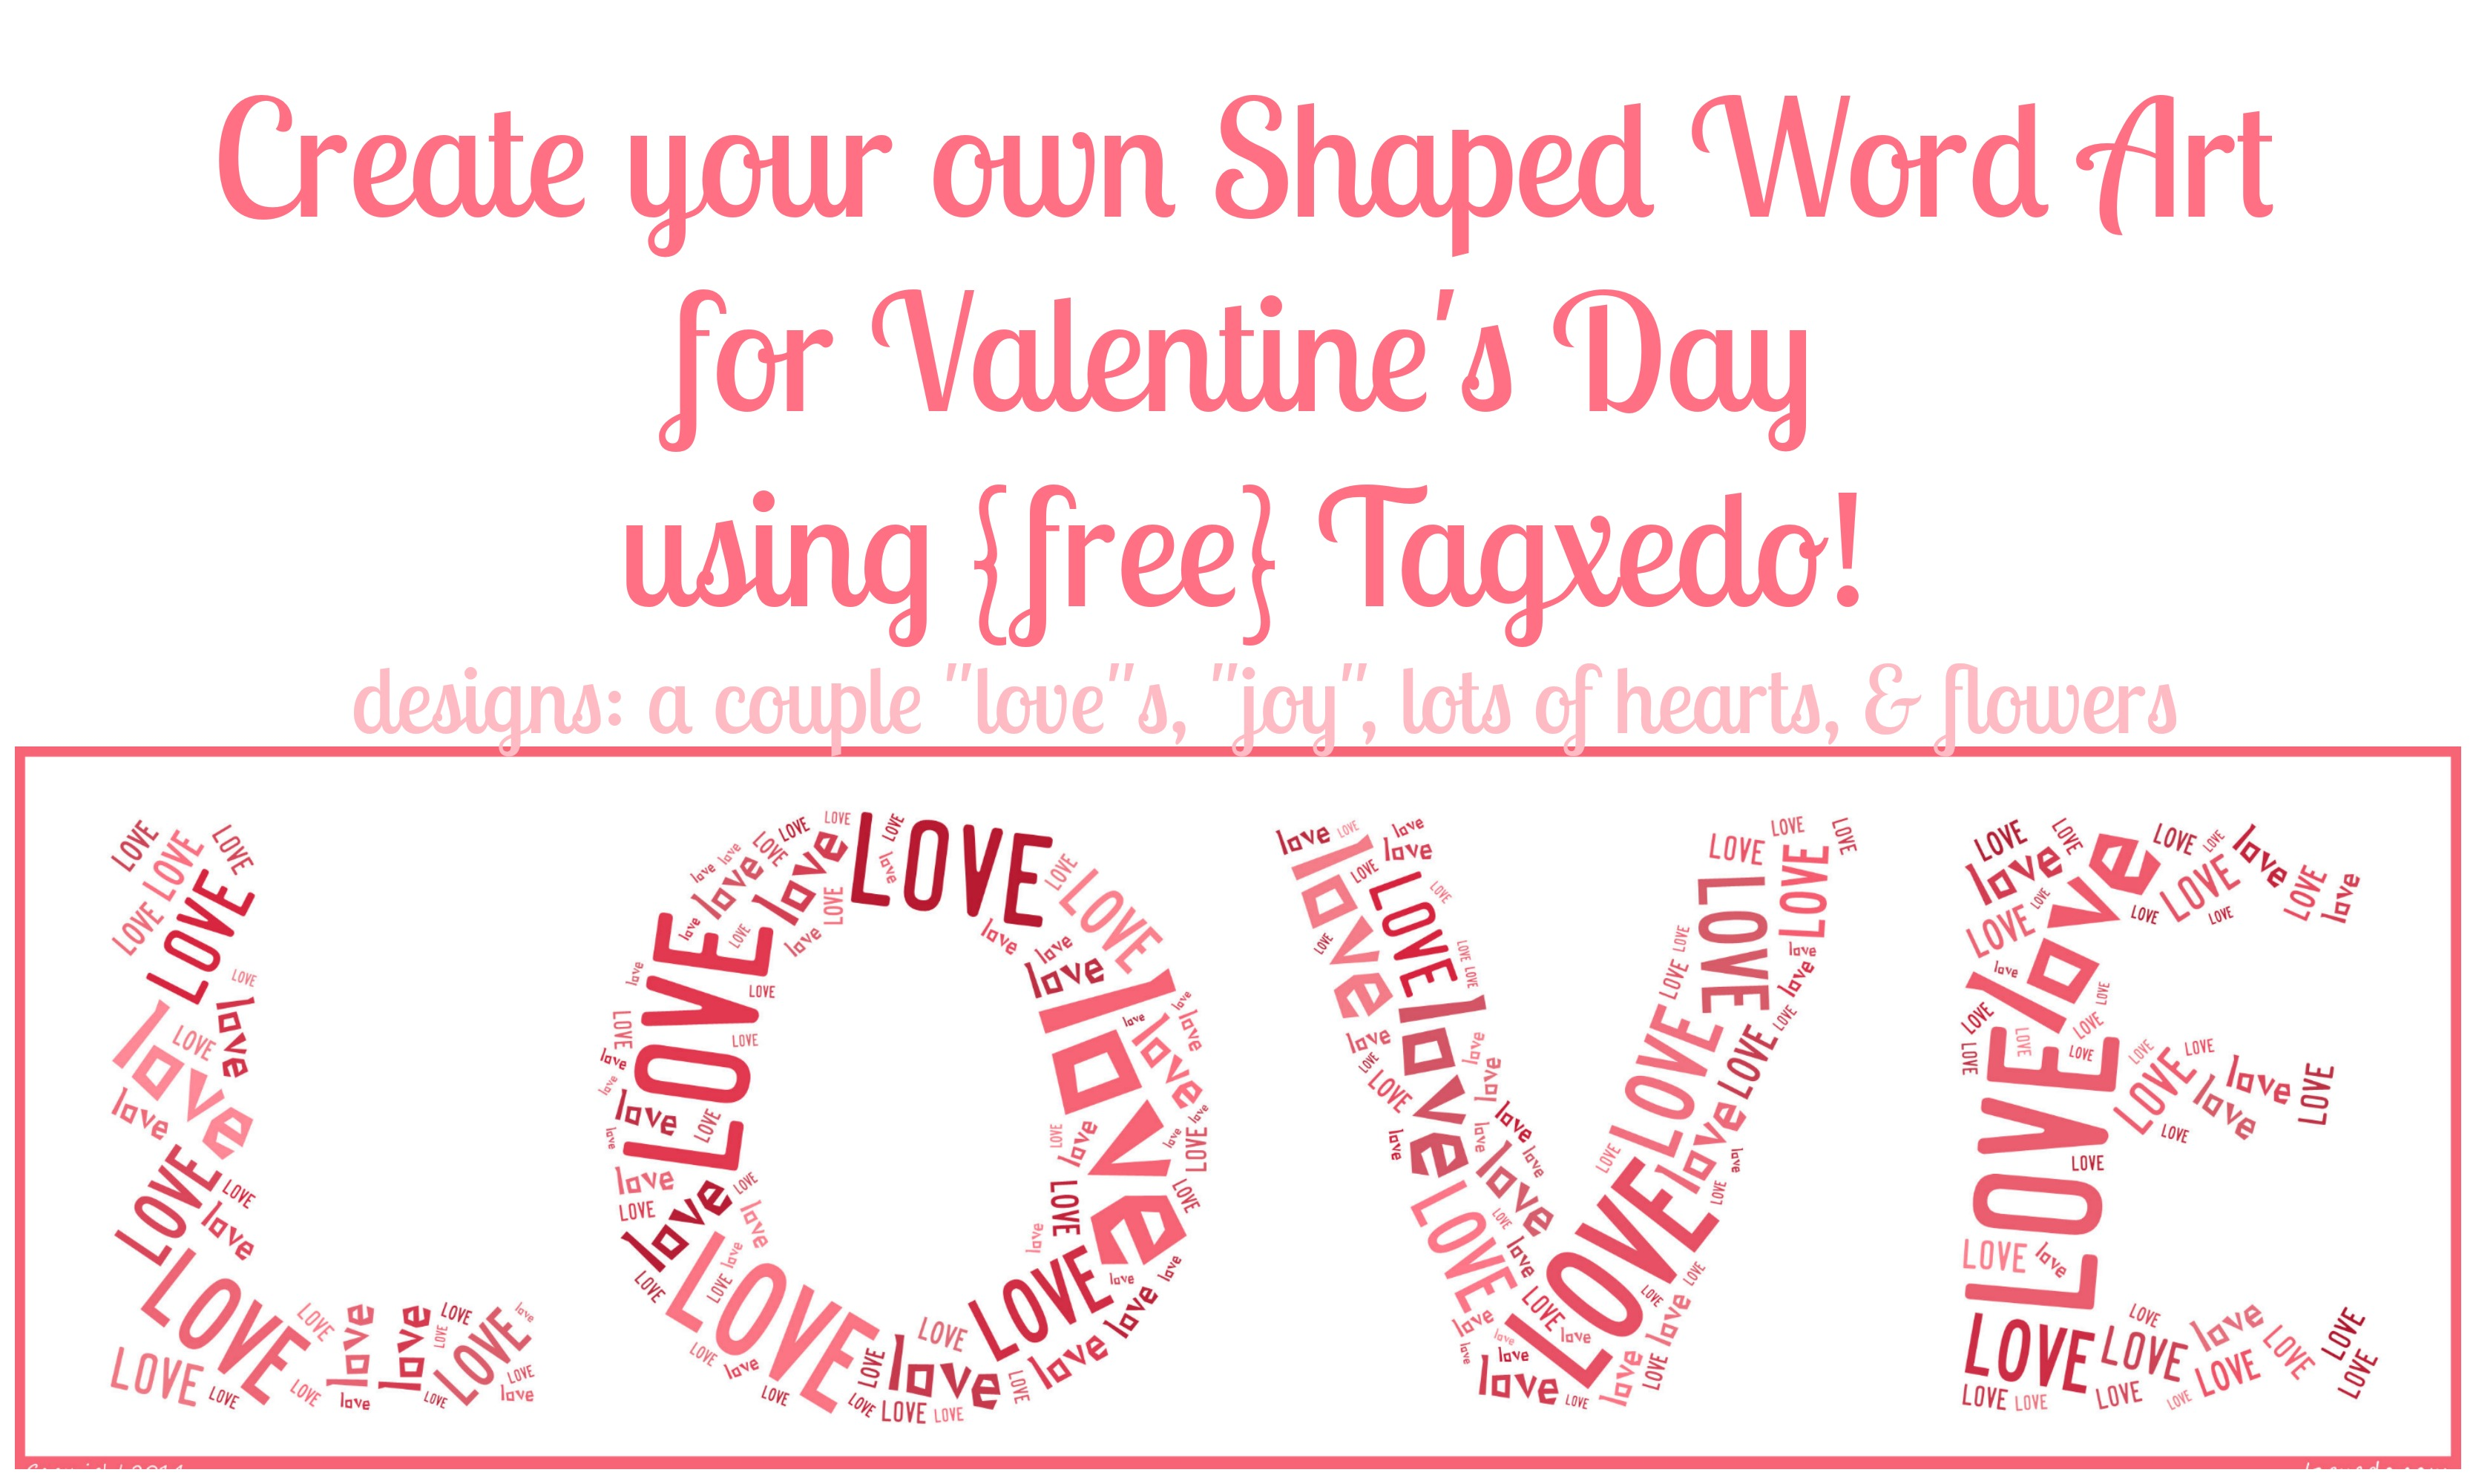 Free shaped word art online valentine 39 s day edition for Create a program online